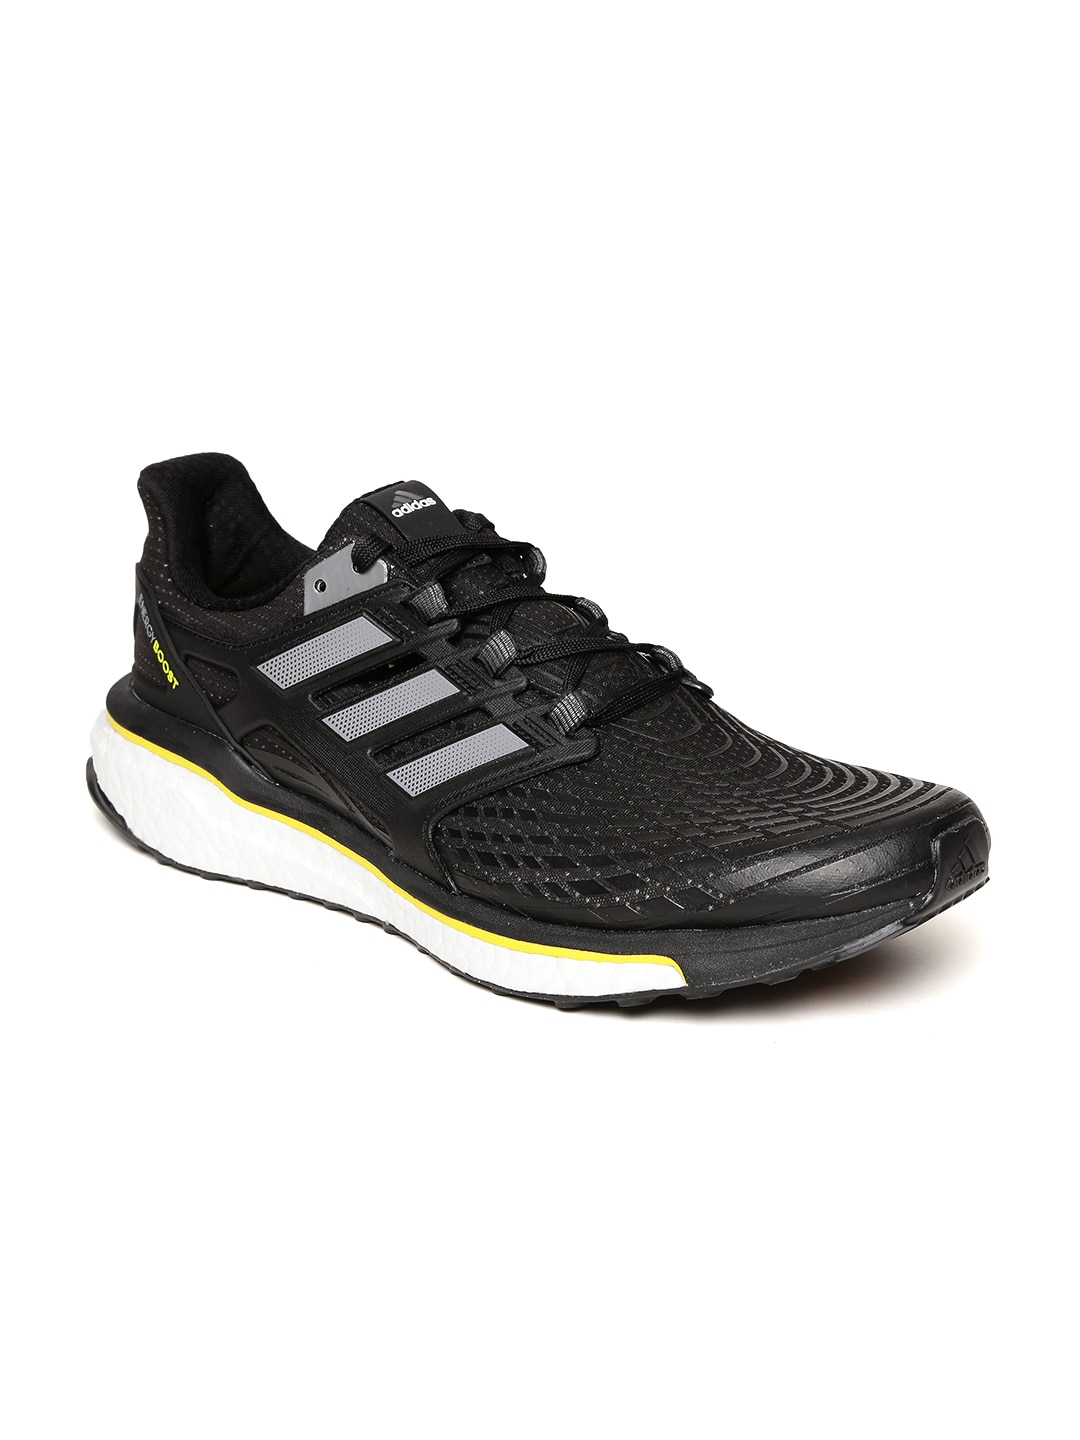 Cushions Adidas Sports Shoes - Buy Cushions Adidas Sports Shoes online in  India a02c1b71d1a